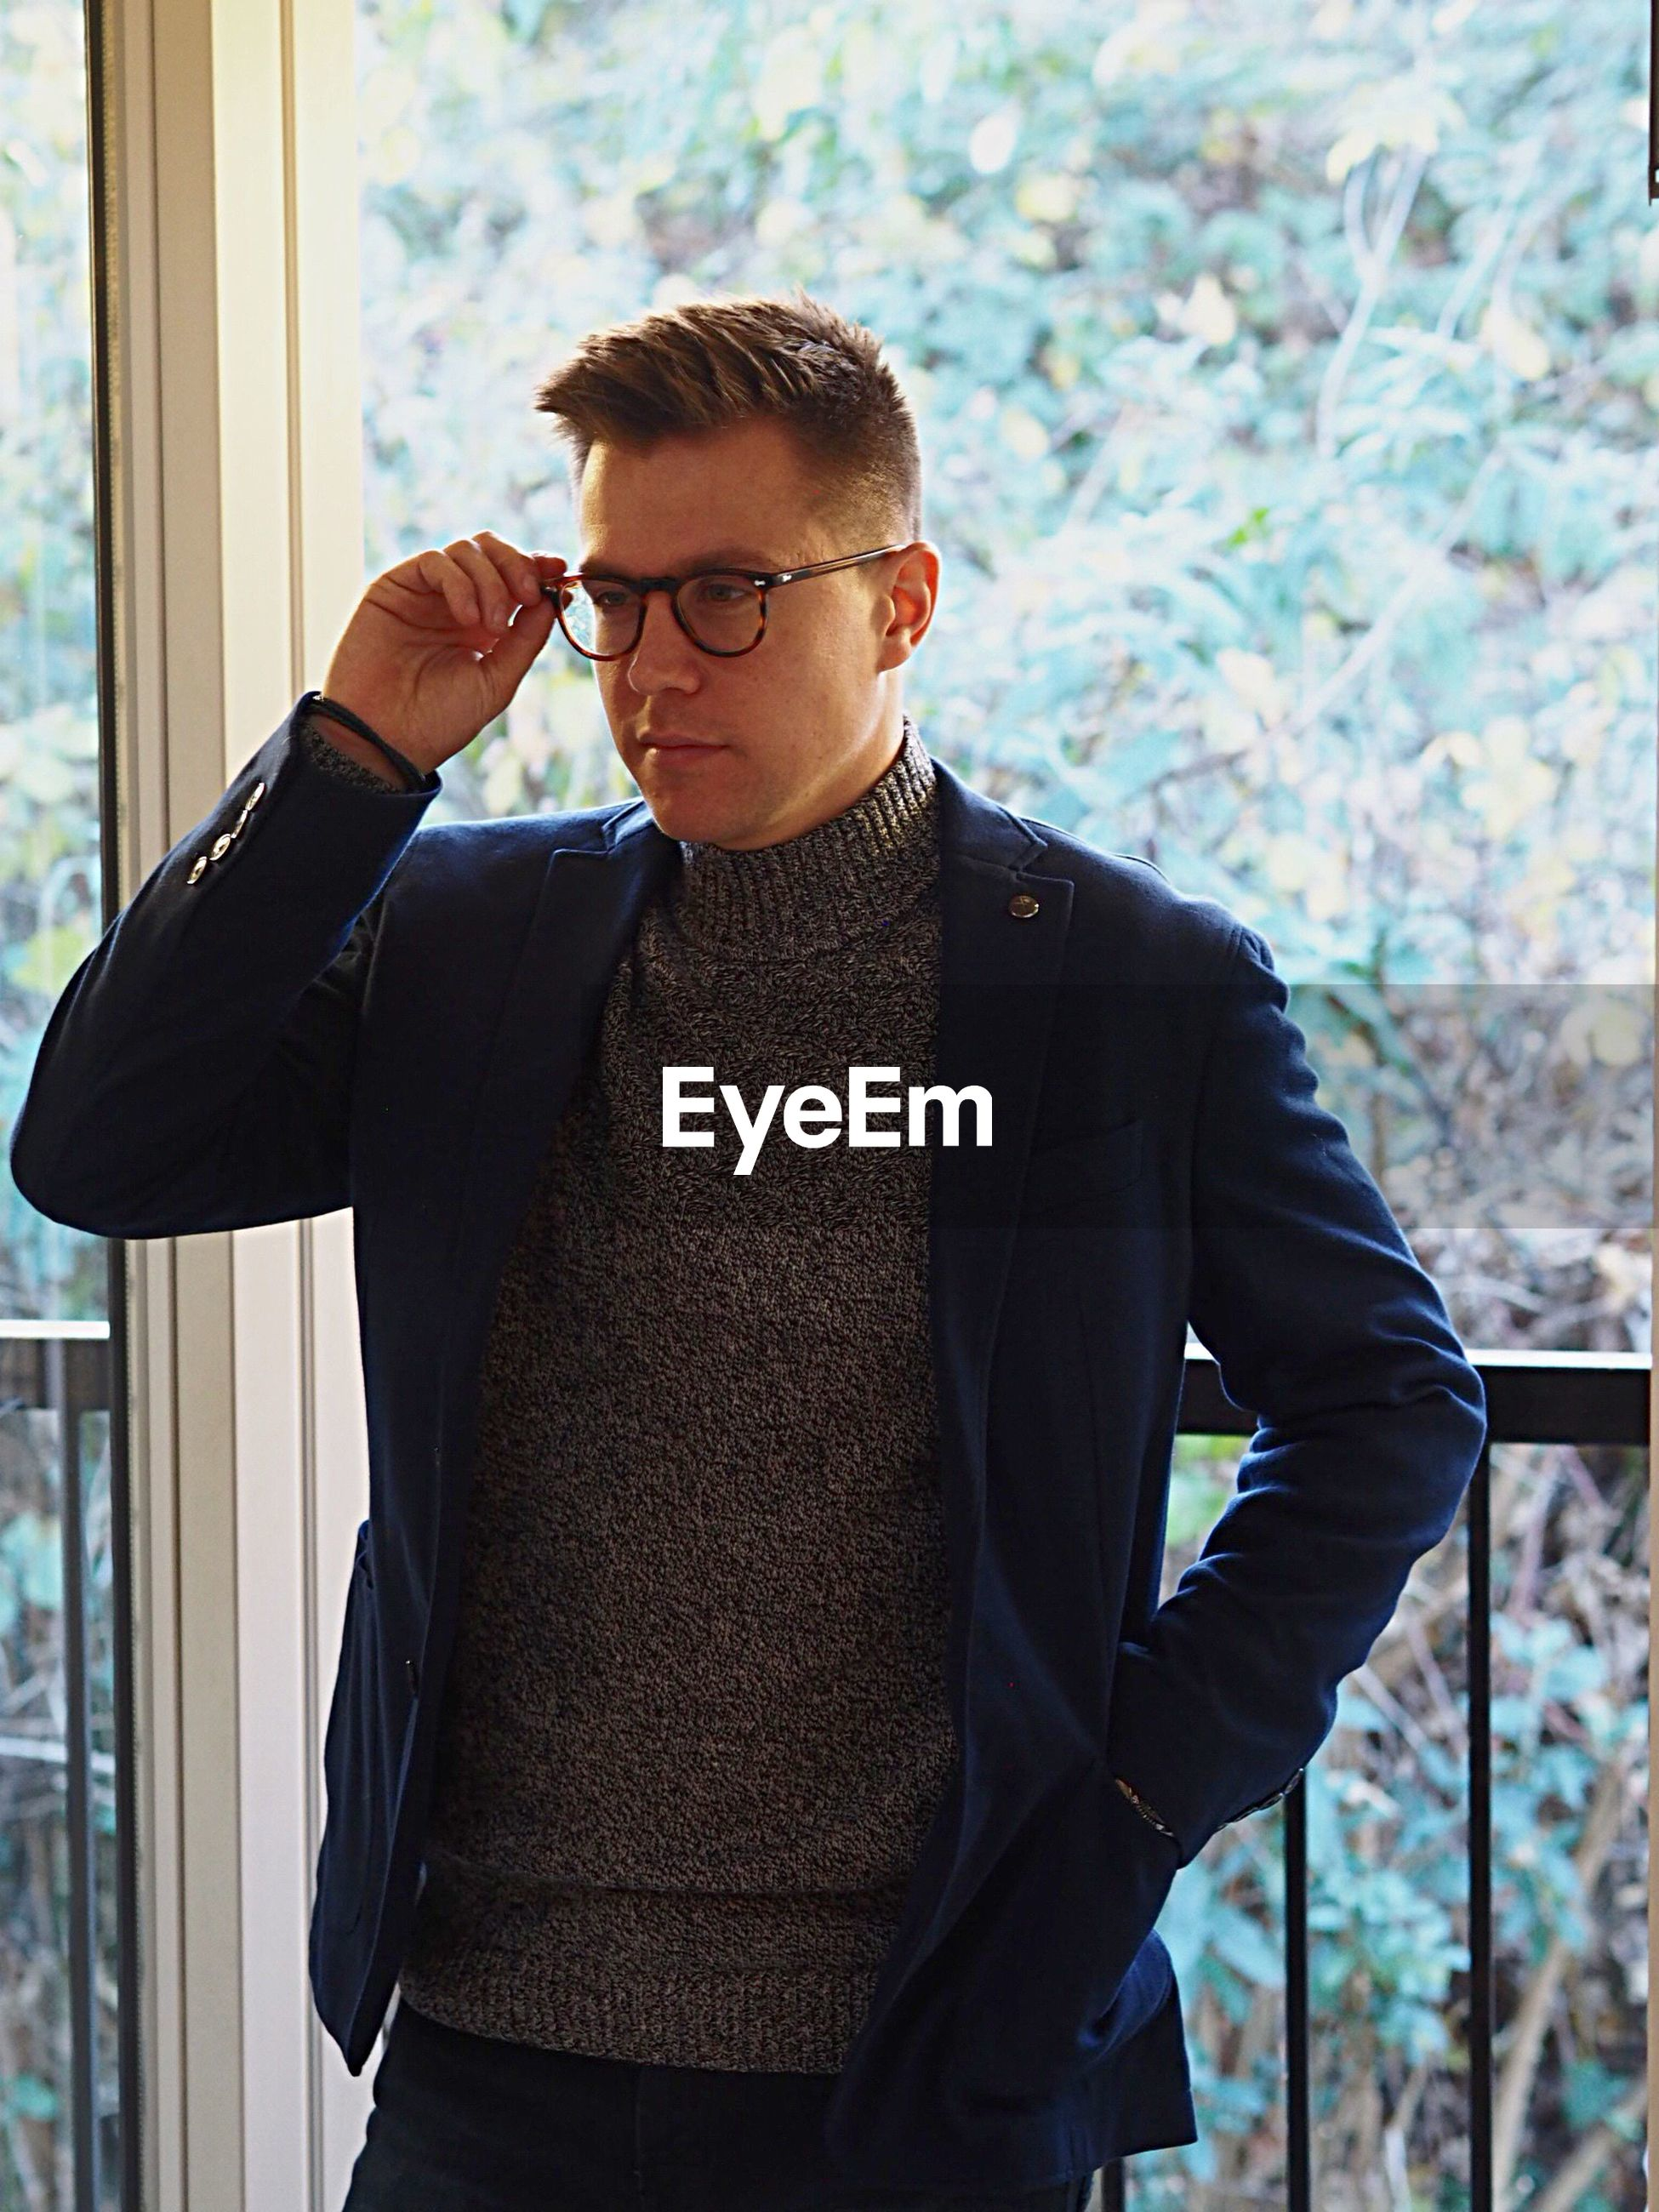 eyeglasses, one person, real people, young adult, standing, young men, businessman, fashion, front view, day, office, business, indoors, one man only, adult, people